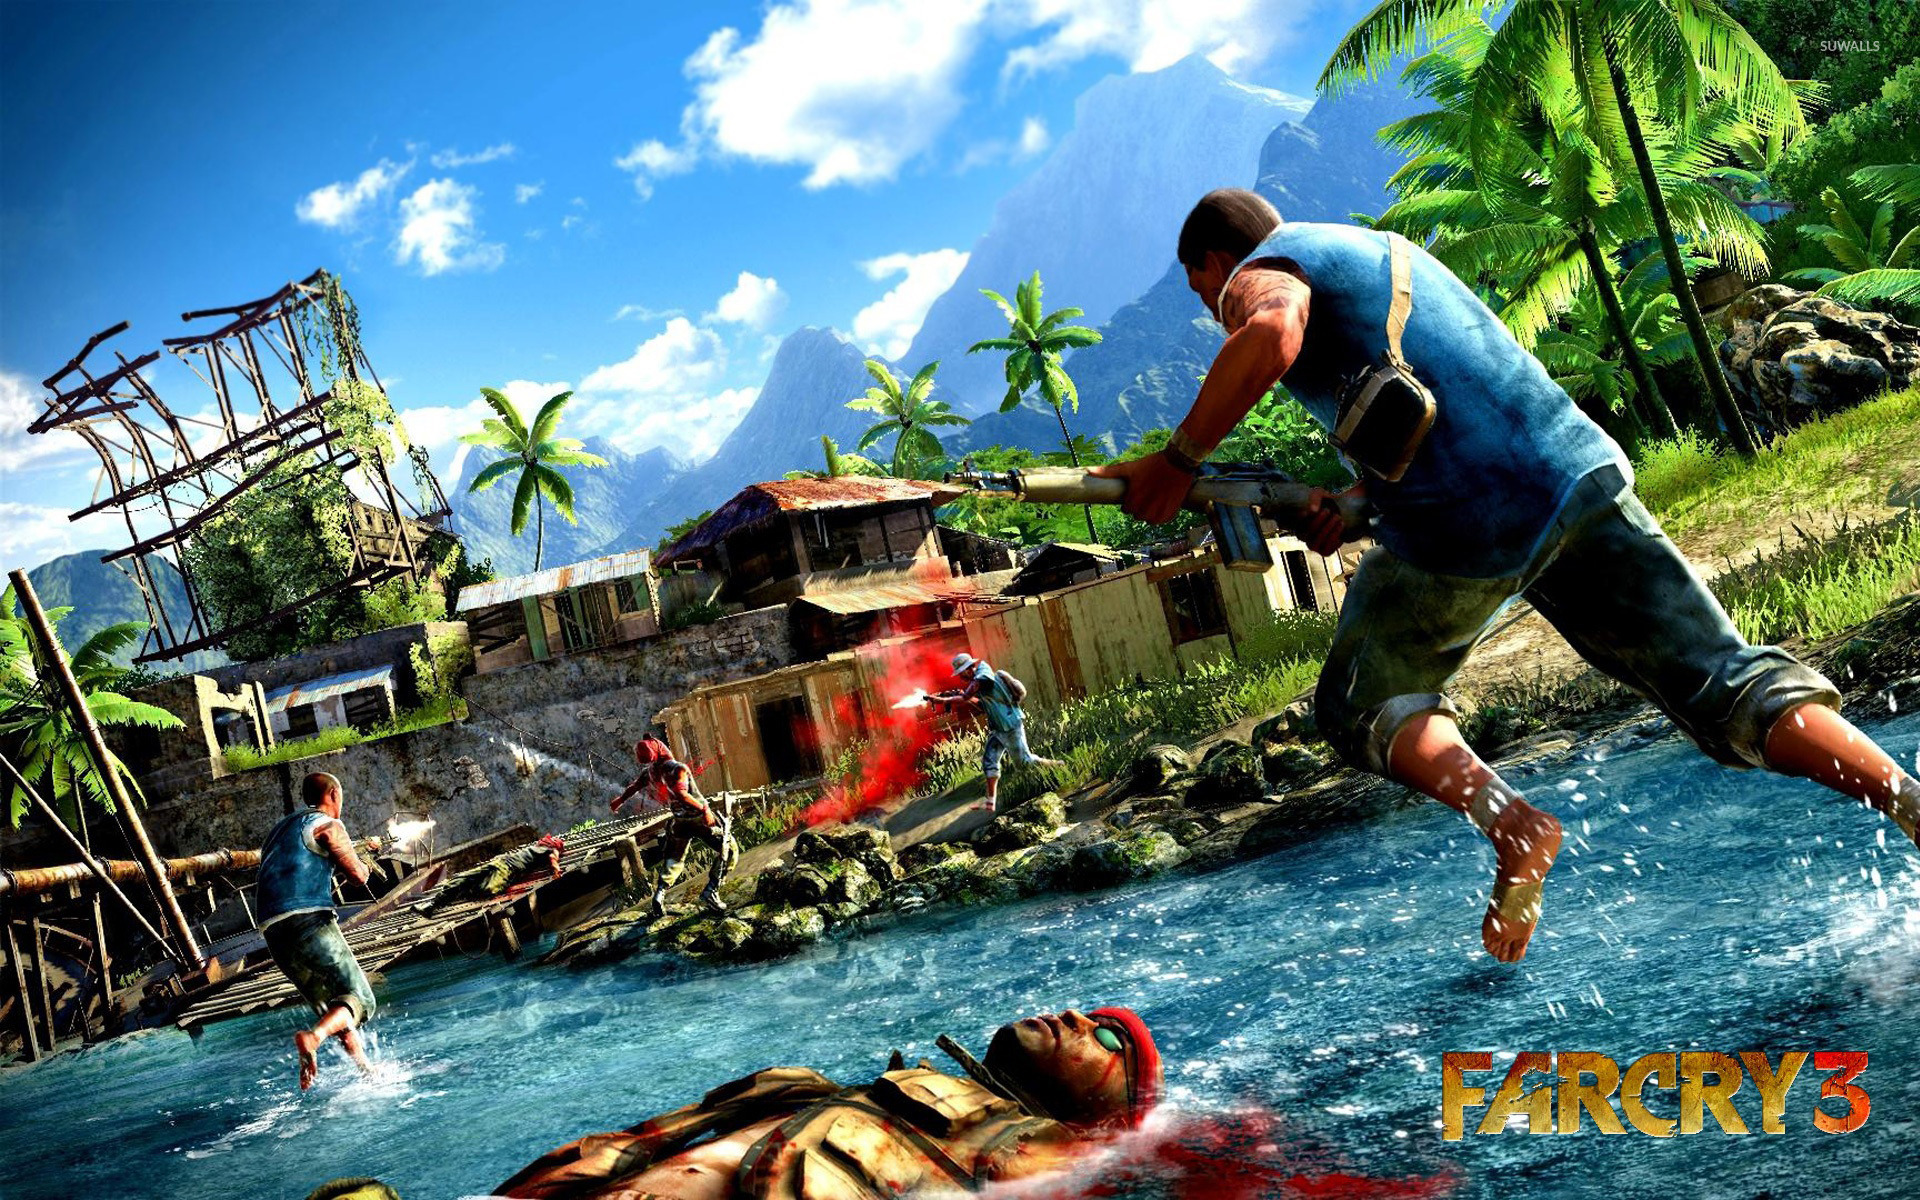 far cry 3 wallpaper 1920x1080 hd